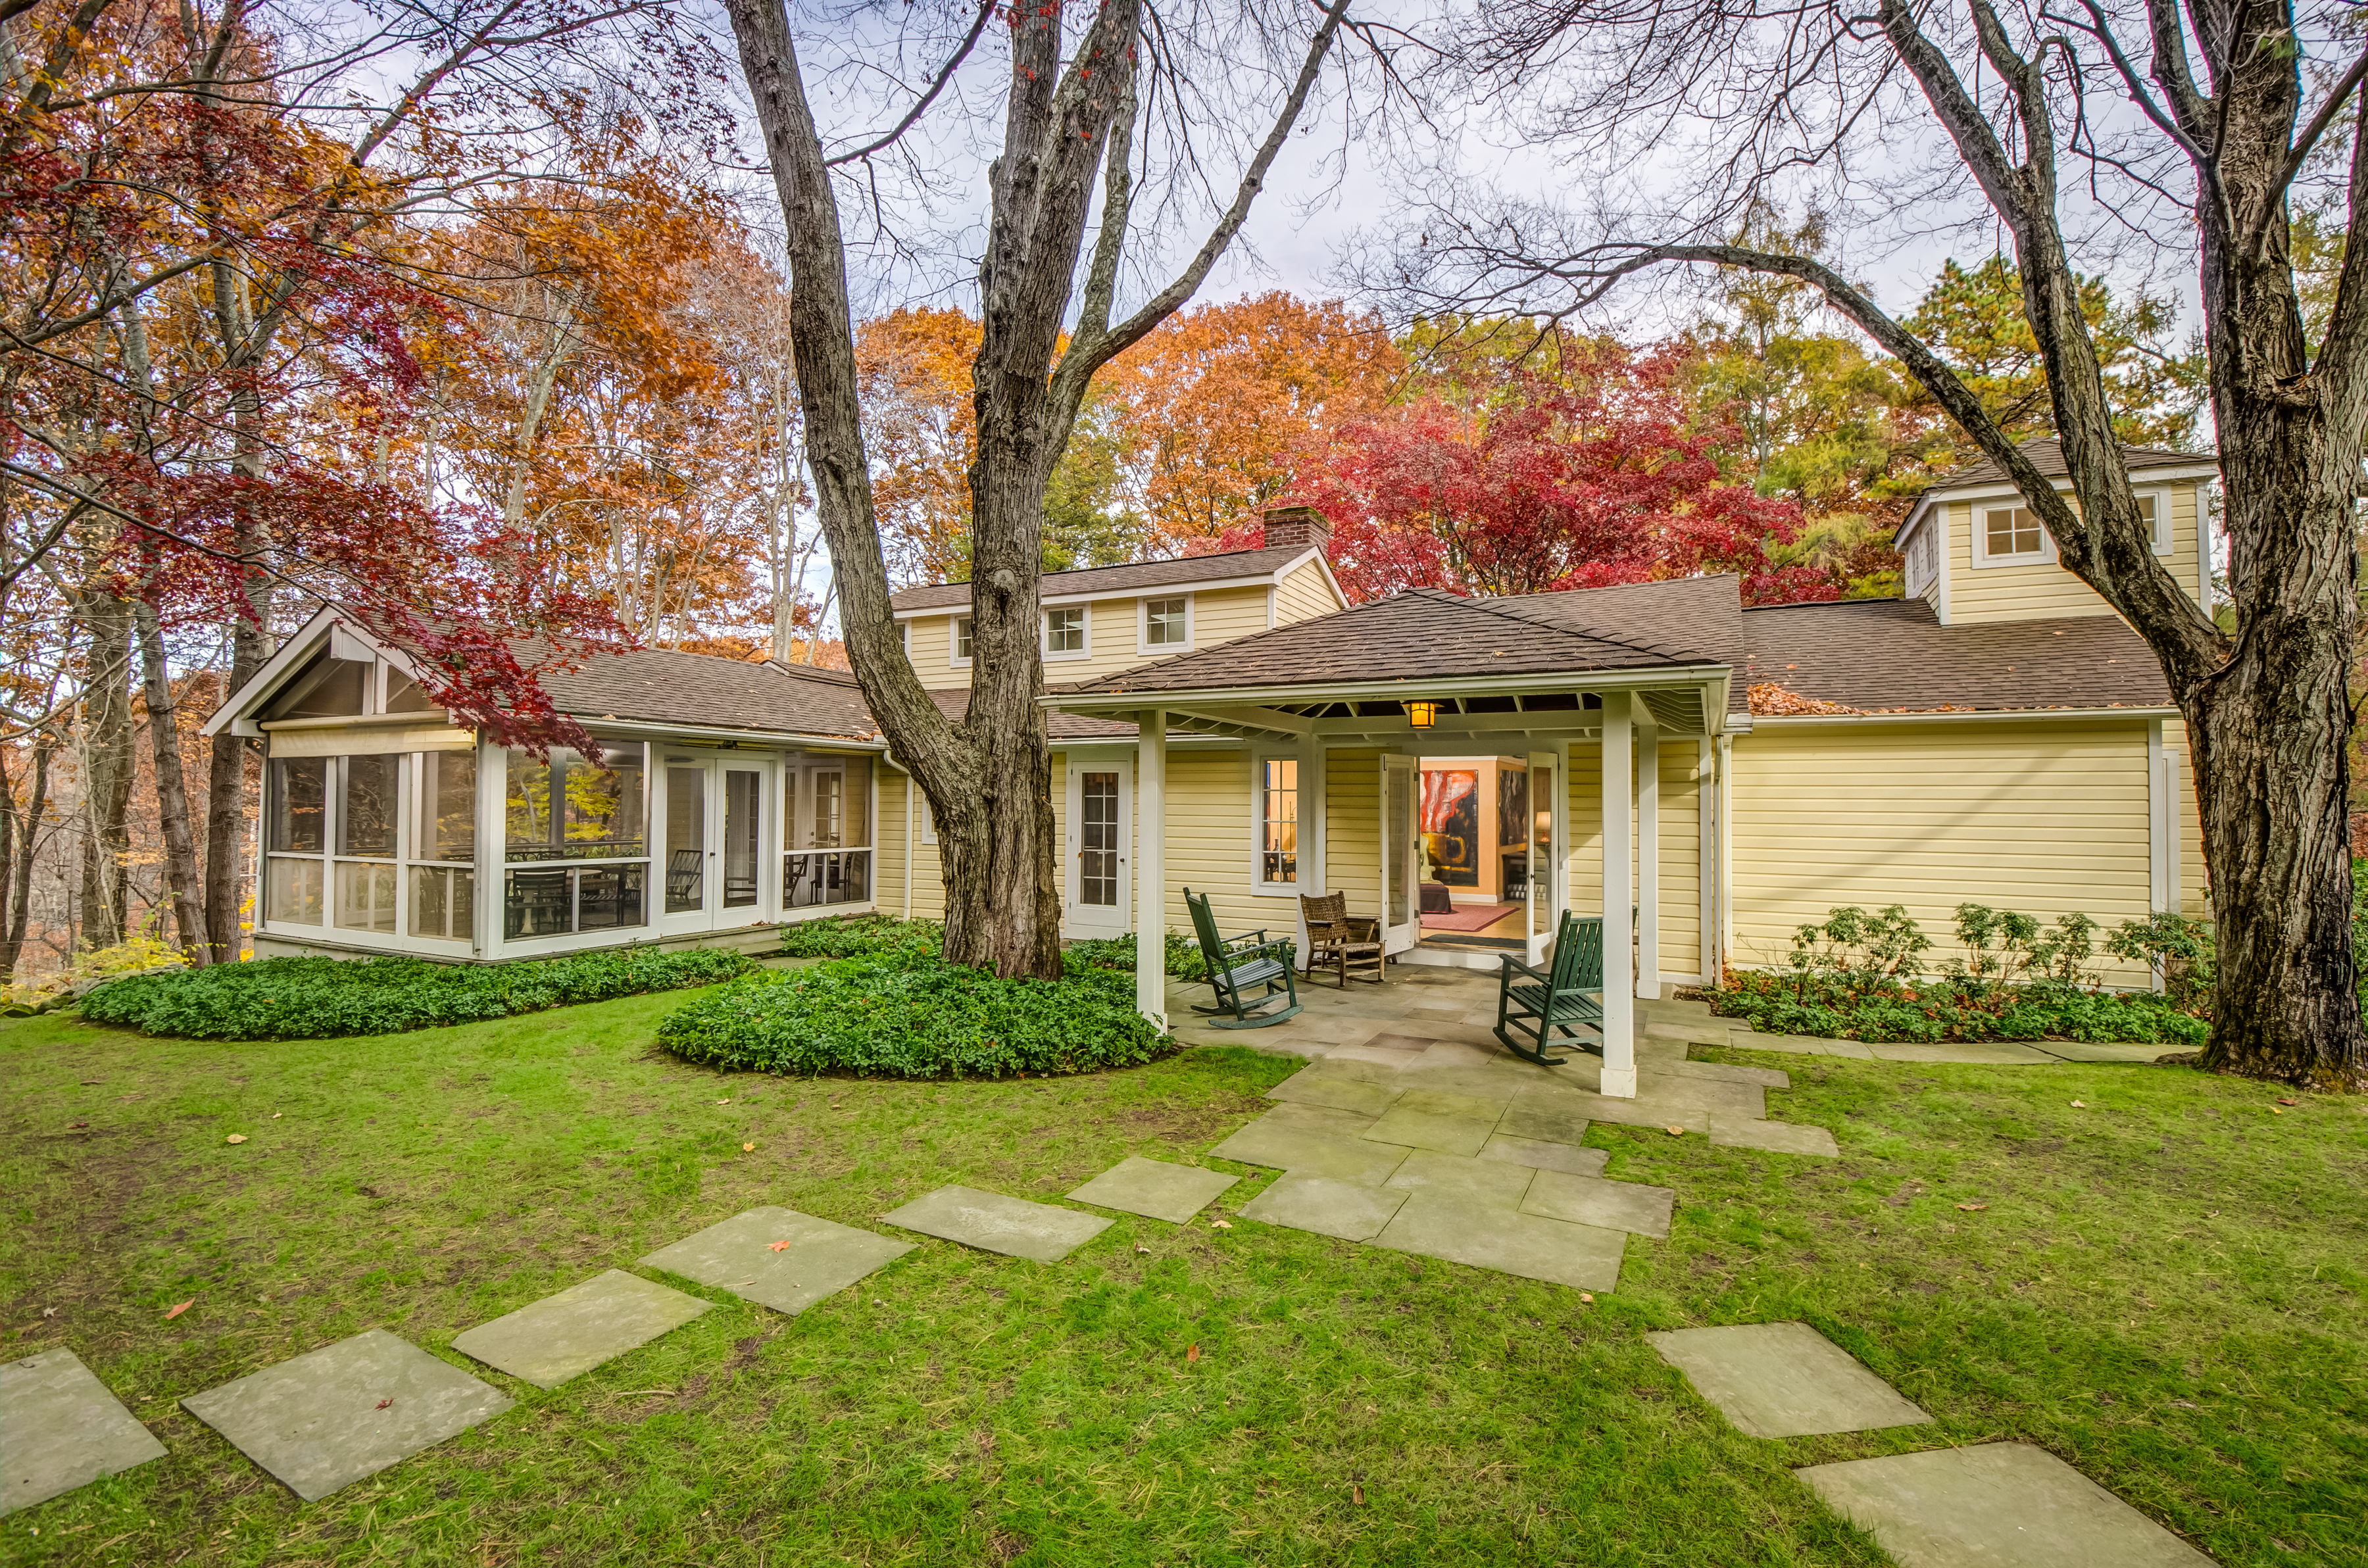 pound ridge divorced singles For sale - 49 conant valley road, pound ridge, ny - $988,000 view details, map and photos of this single family property with 3 bedrooms and 3 total baths mls# 4800021.